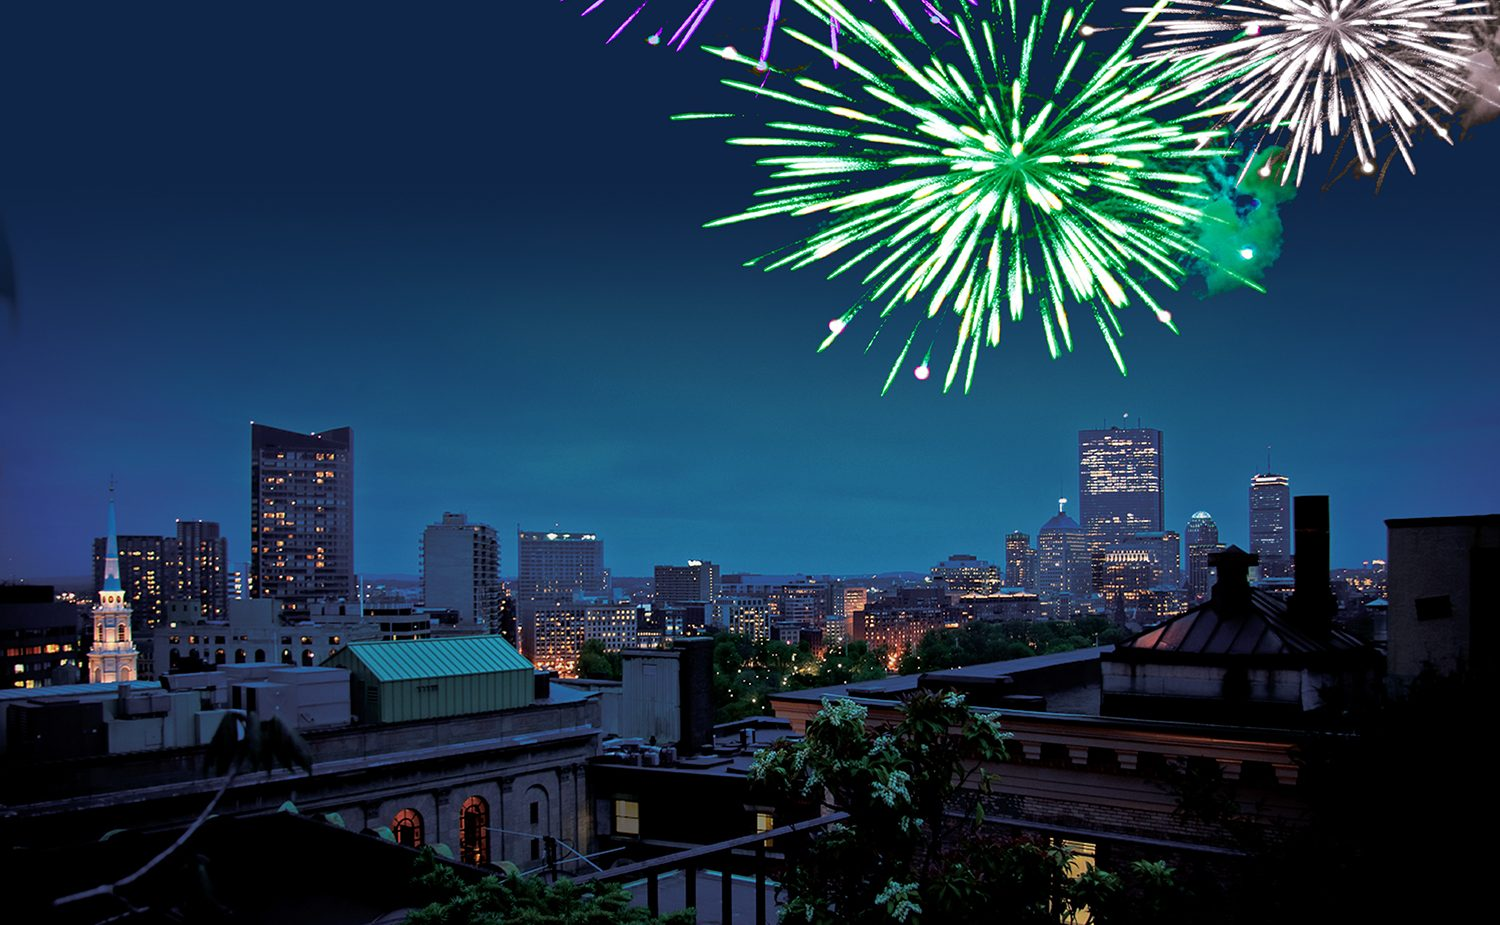 roof deck photo at night with green, gold, and silver fireworks